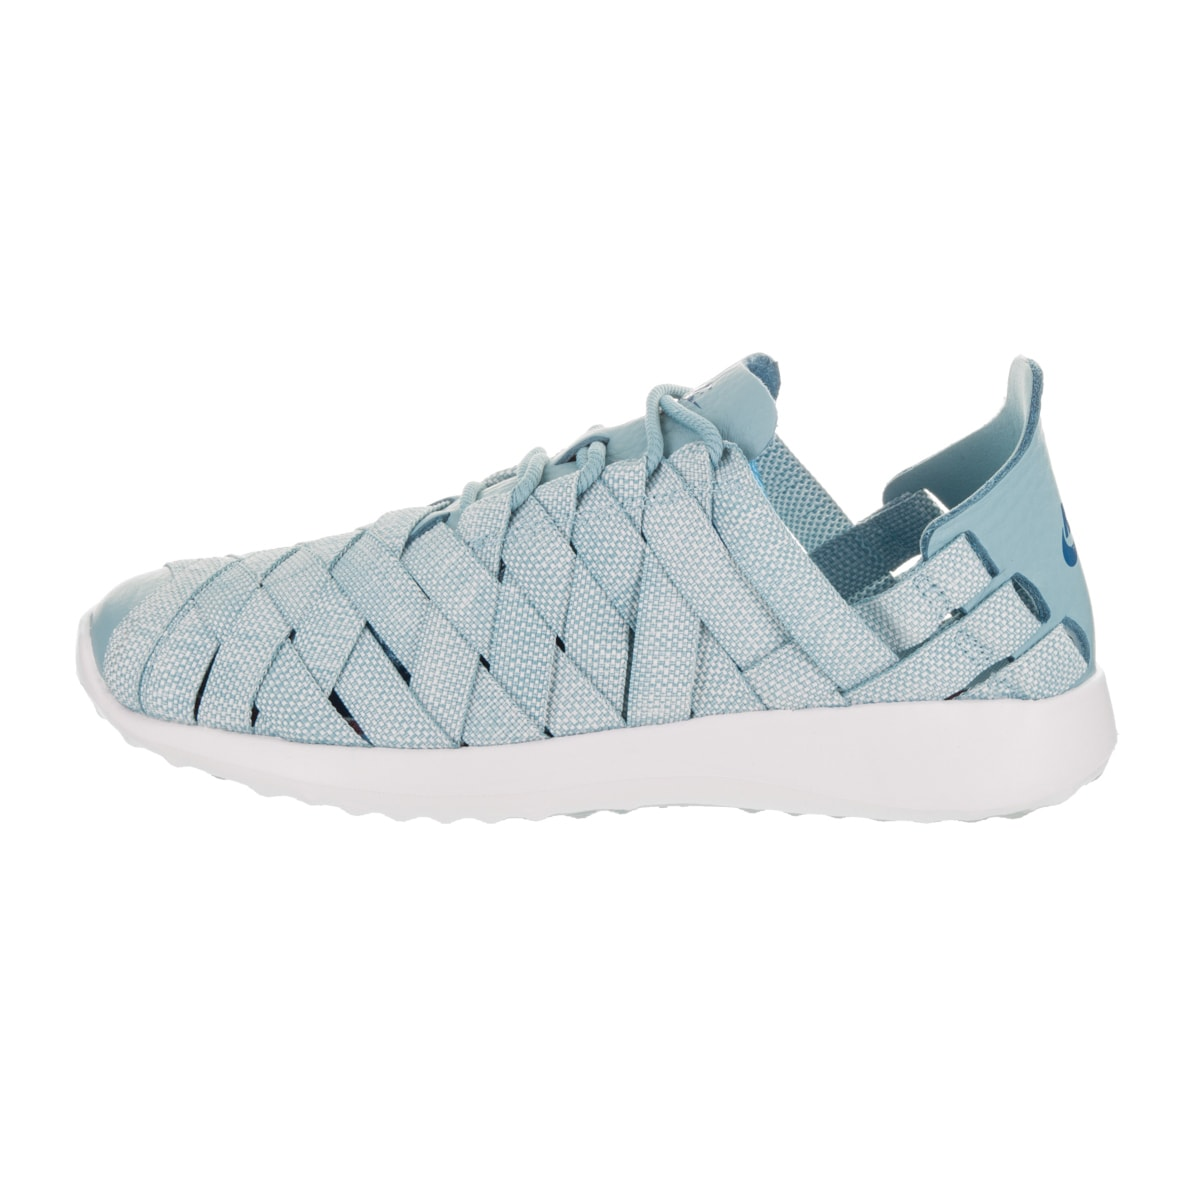 detailed look bdd06 36ca9 Shop Nike Women s Juvenate Woven Prm Casual Shoe - Free Shipping Today -  Overstock - 16342775